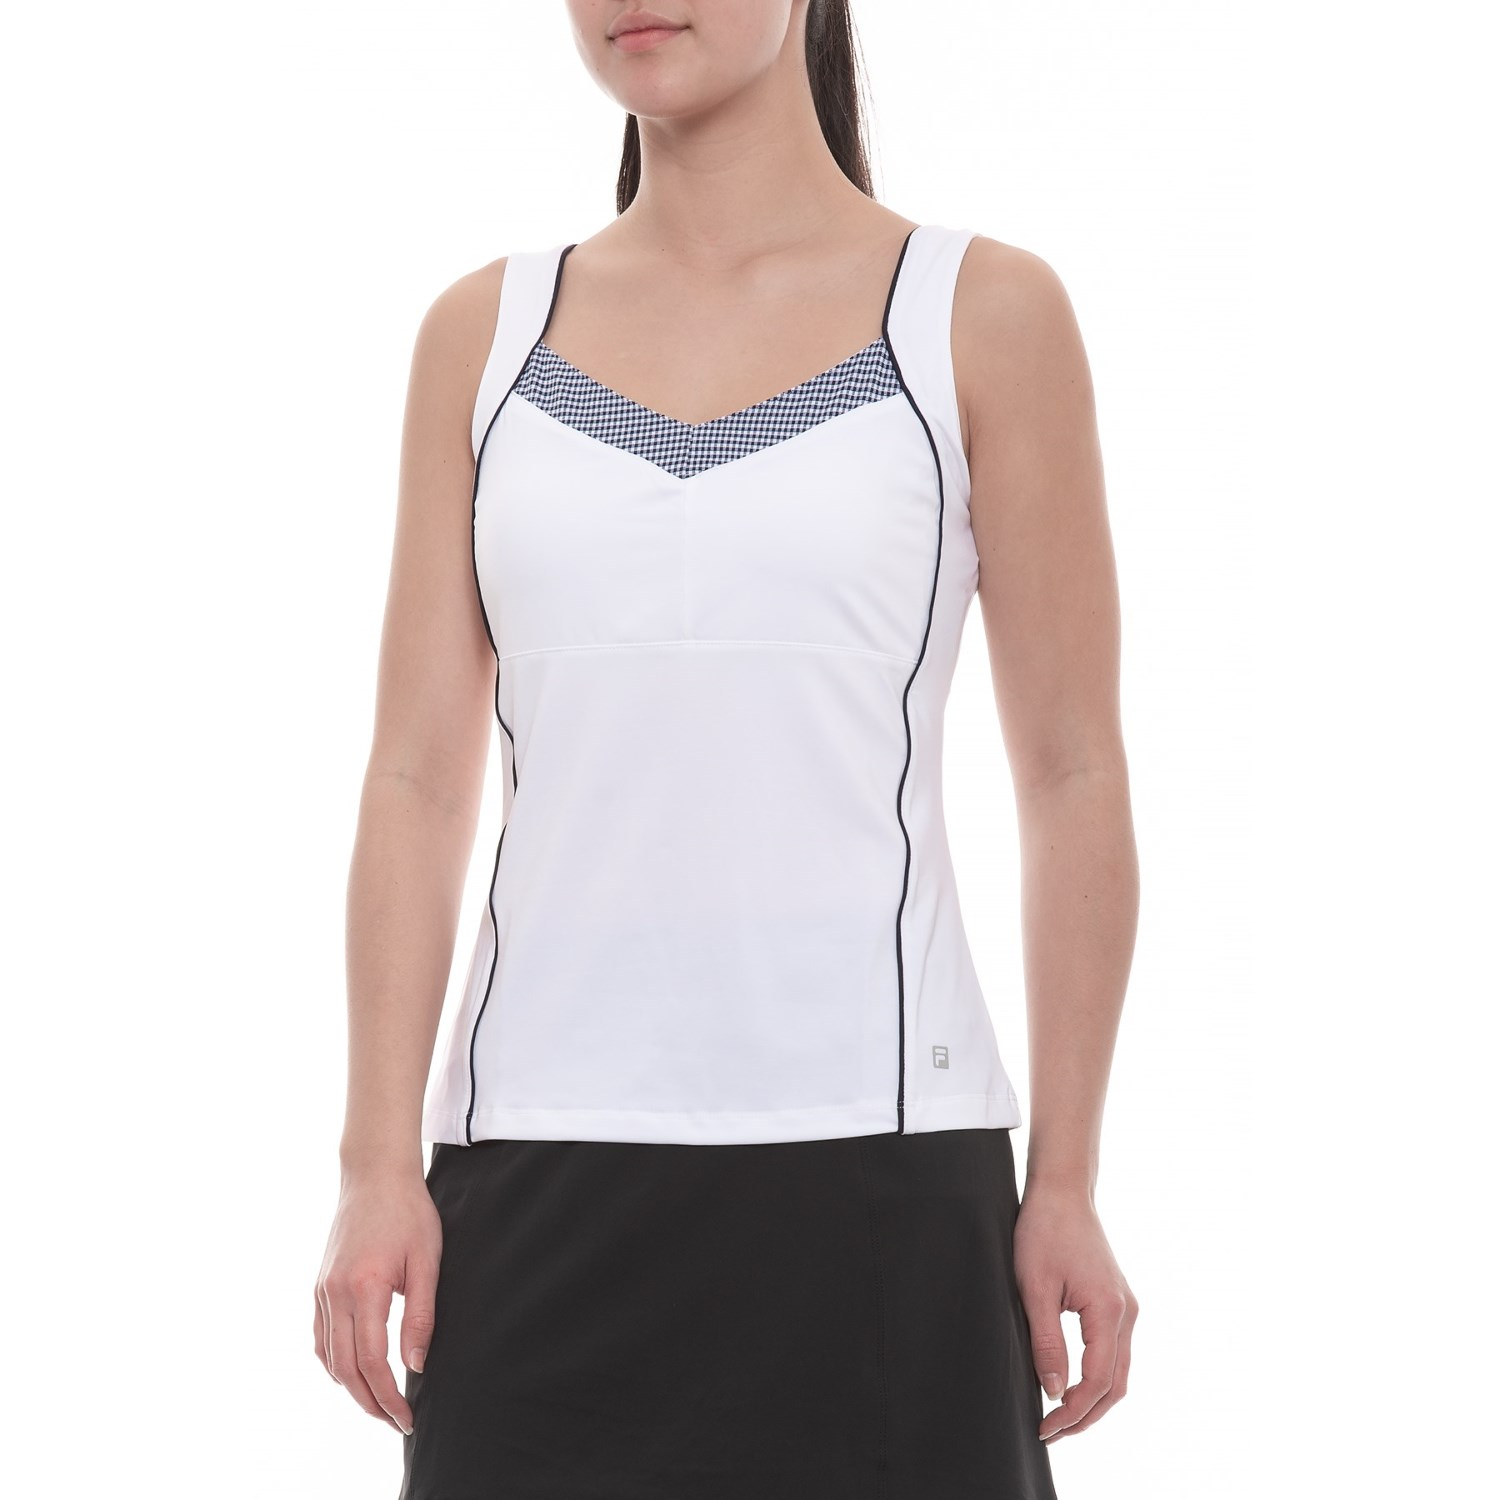 099e1f0edb413 Fila tennis gingham cami golf tank top for women save jpg 1500x1500 Golf  tank